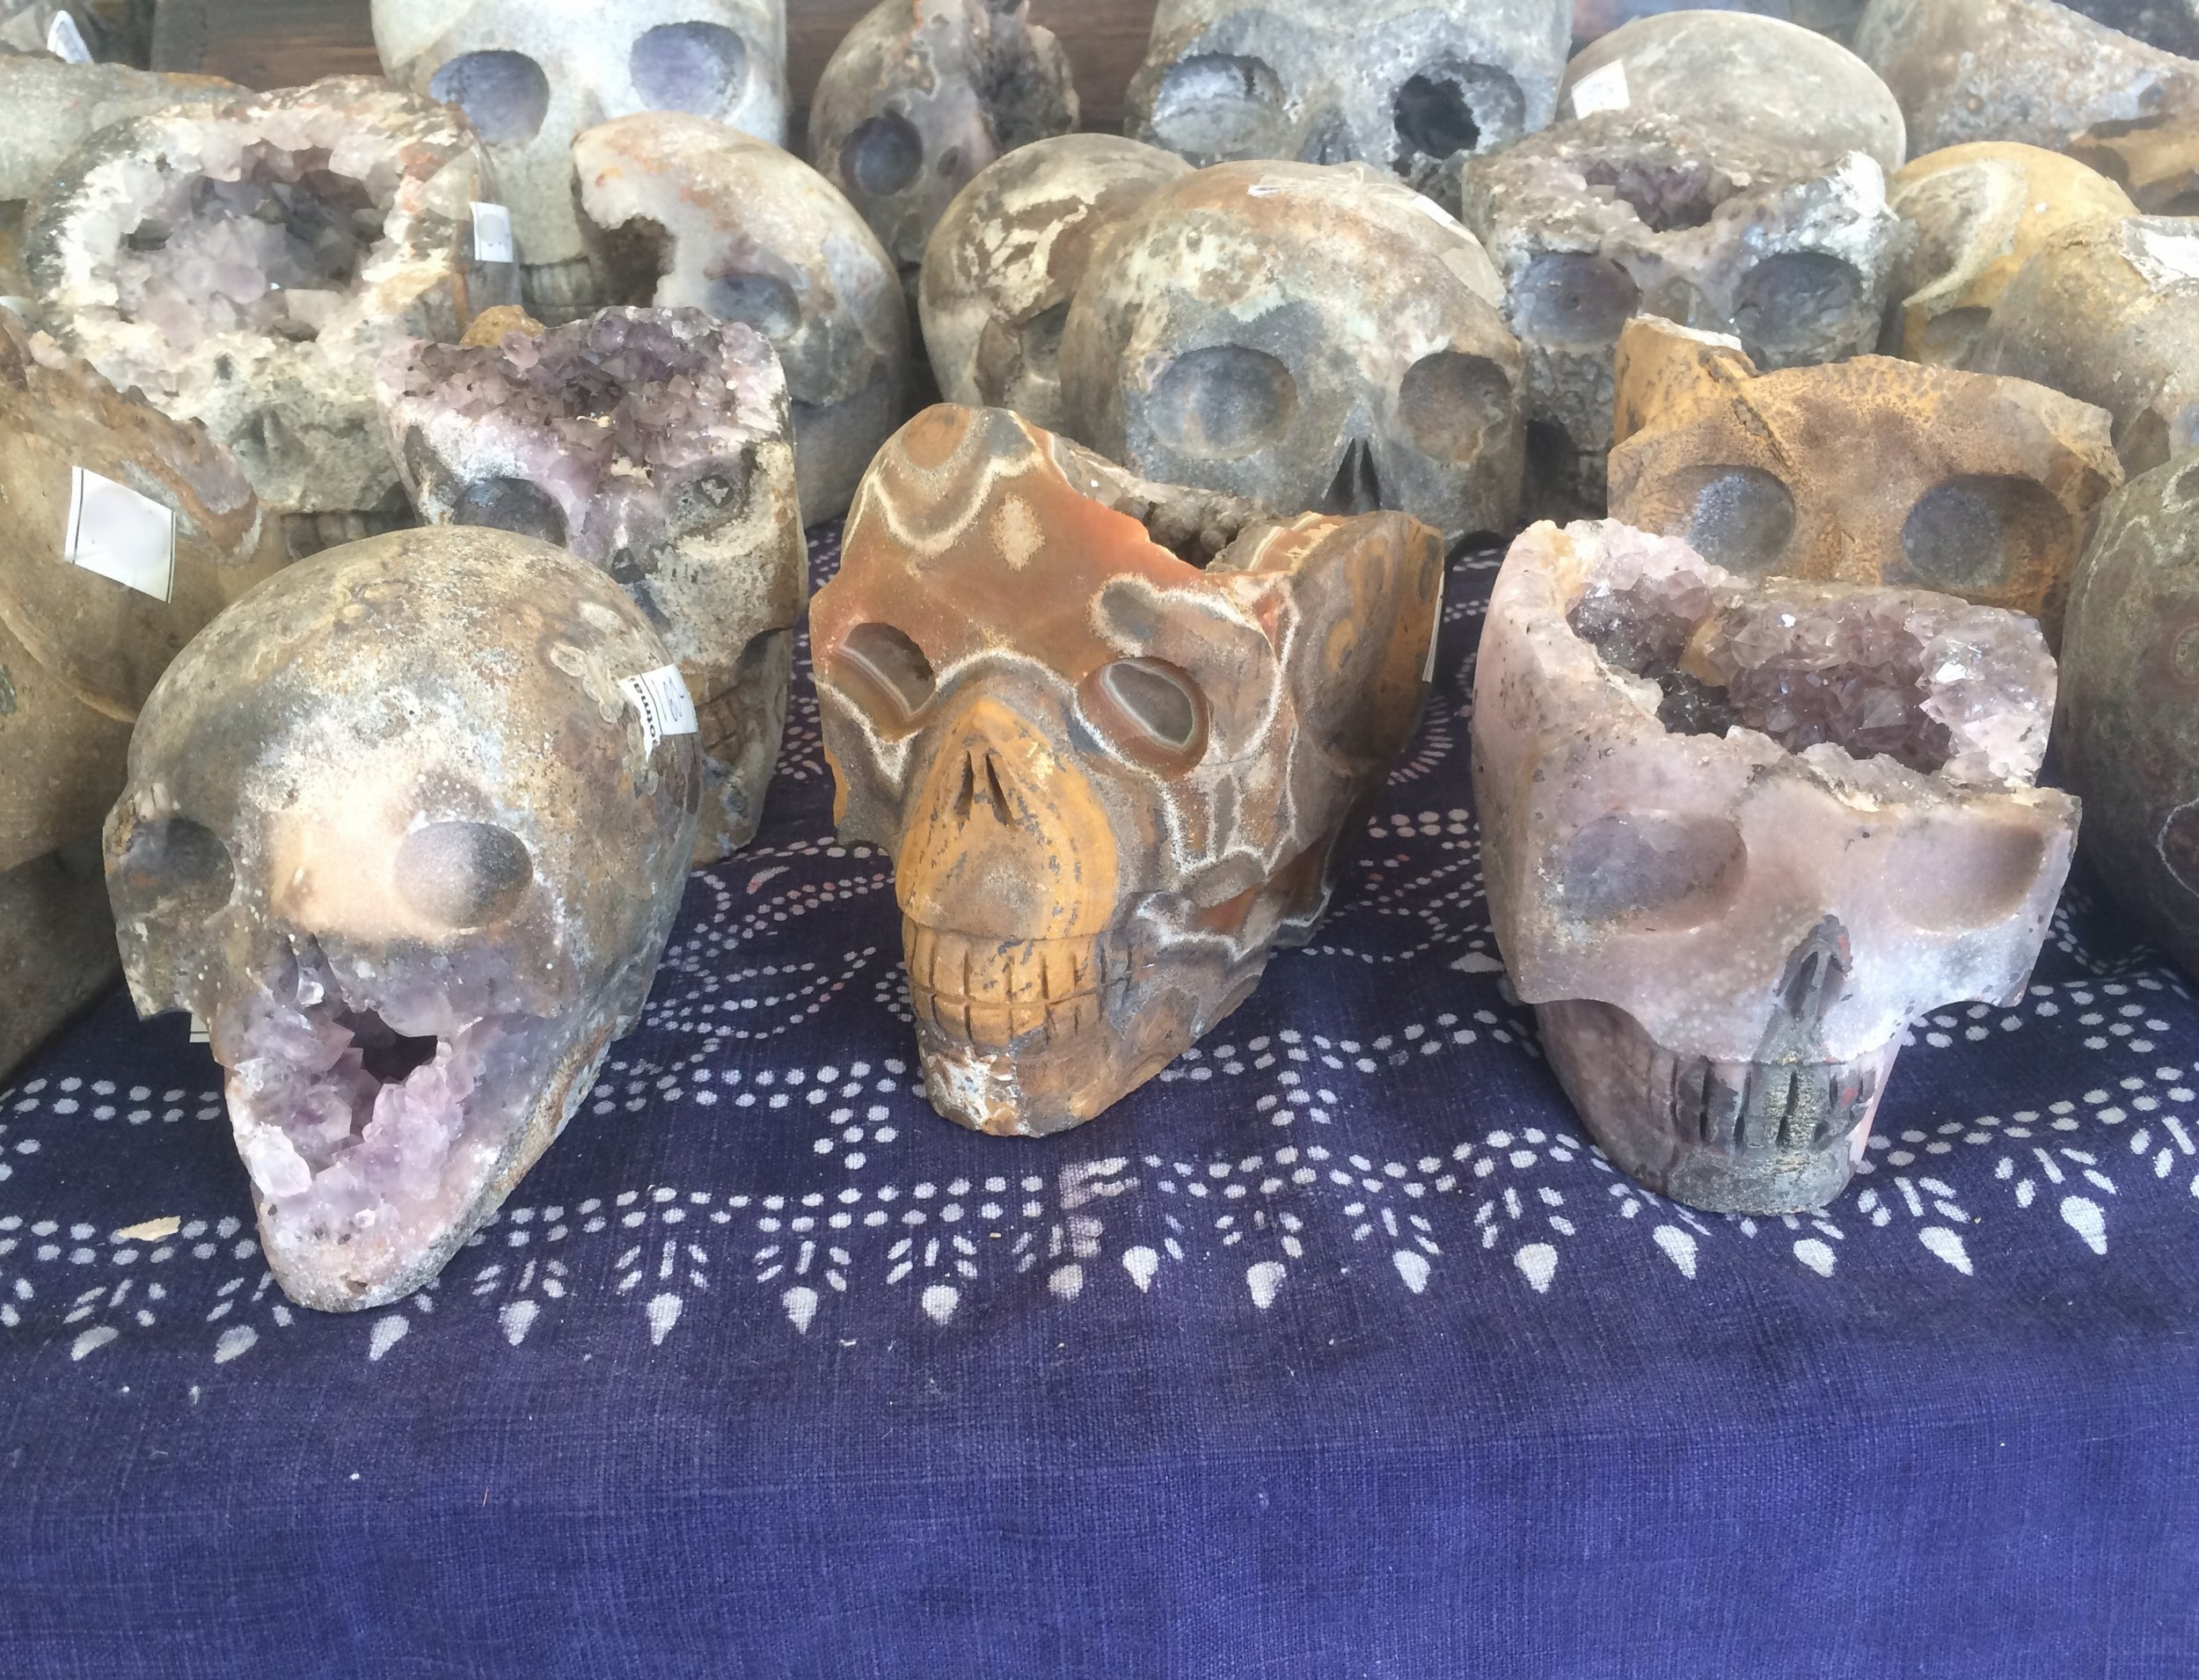 These geode skulls were incredible!